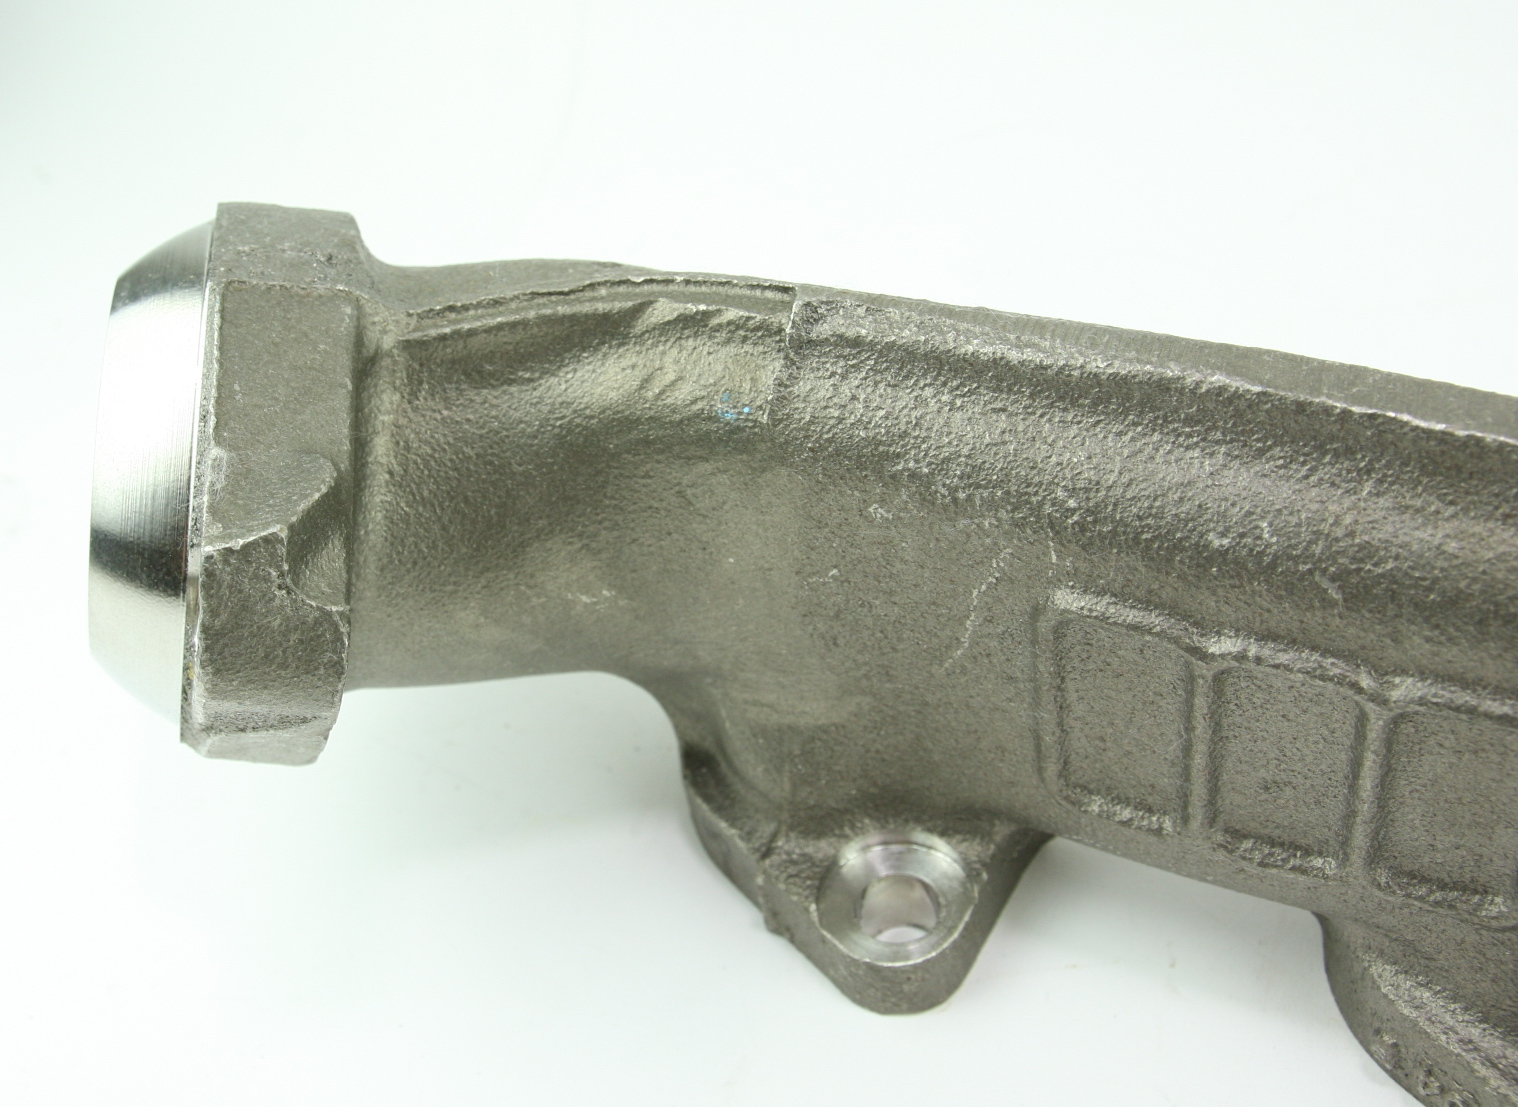 * New OEM YC2Z9430AA Ford 00-14 Super Duty 6.8L V10 Exhaust Manifold Free Ship! - image 12